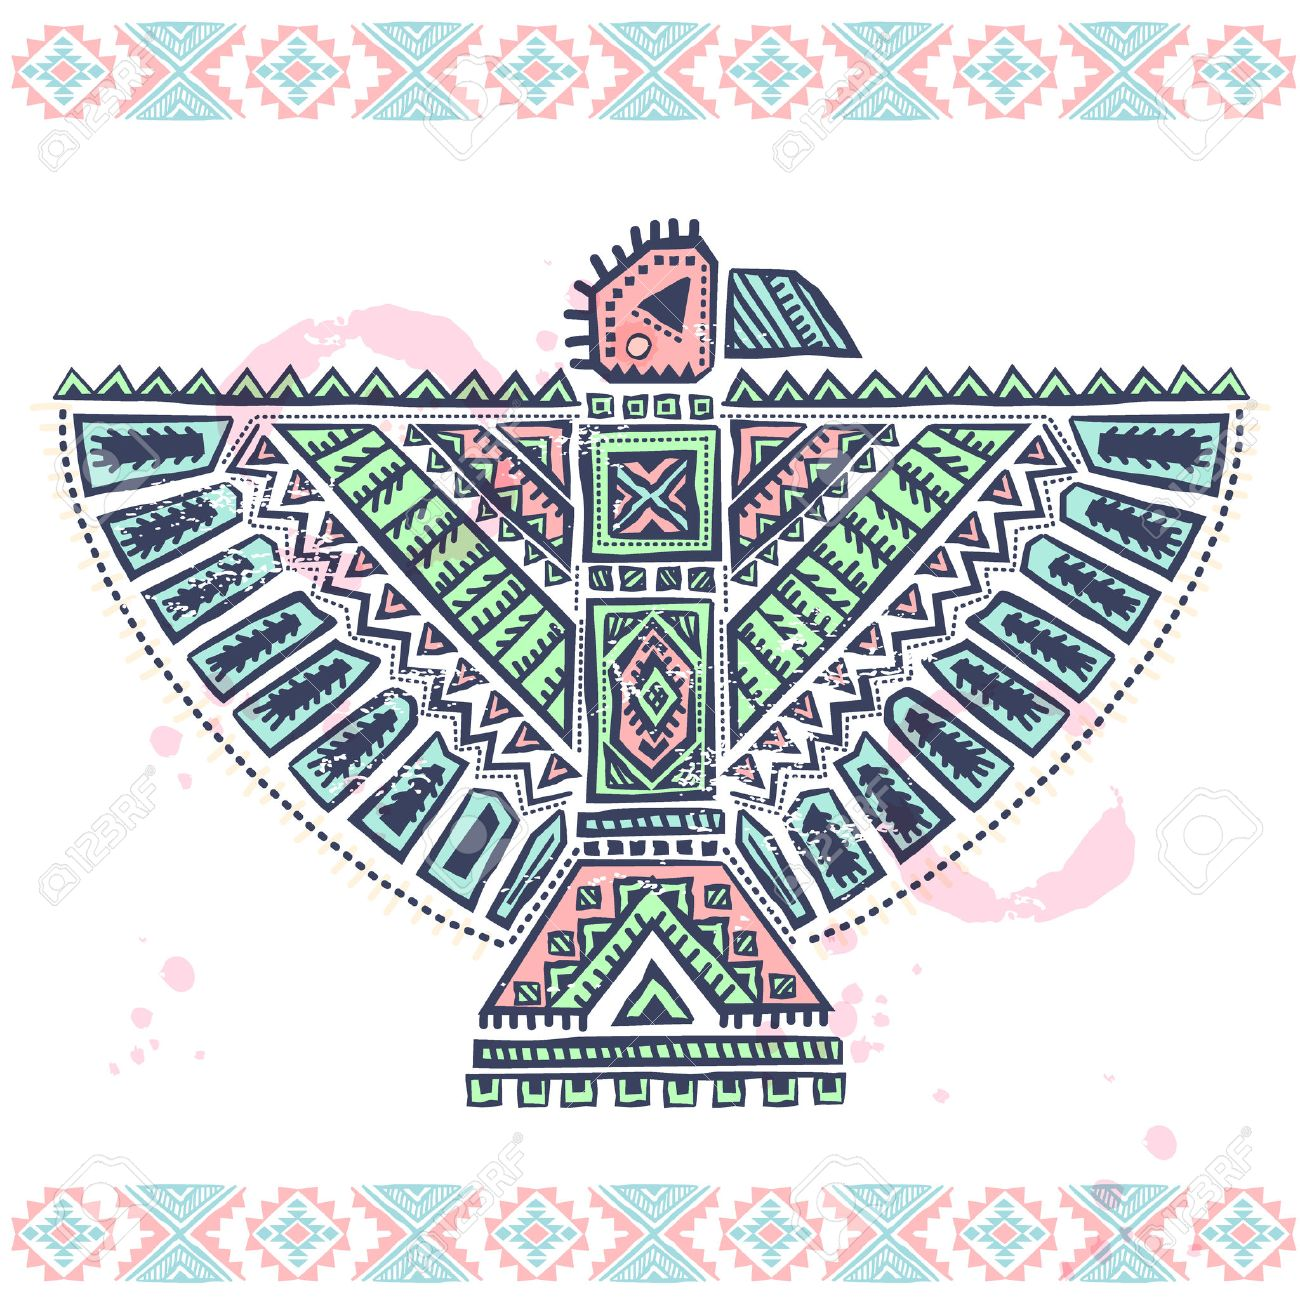 Native american ornaments - Tribal Vintage Native American Eagle Illustration With Ornaments Stock Vector 25029228